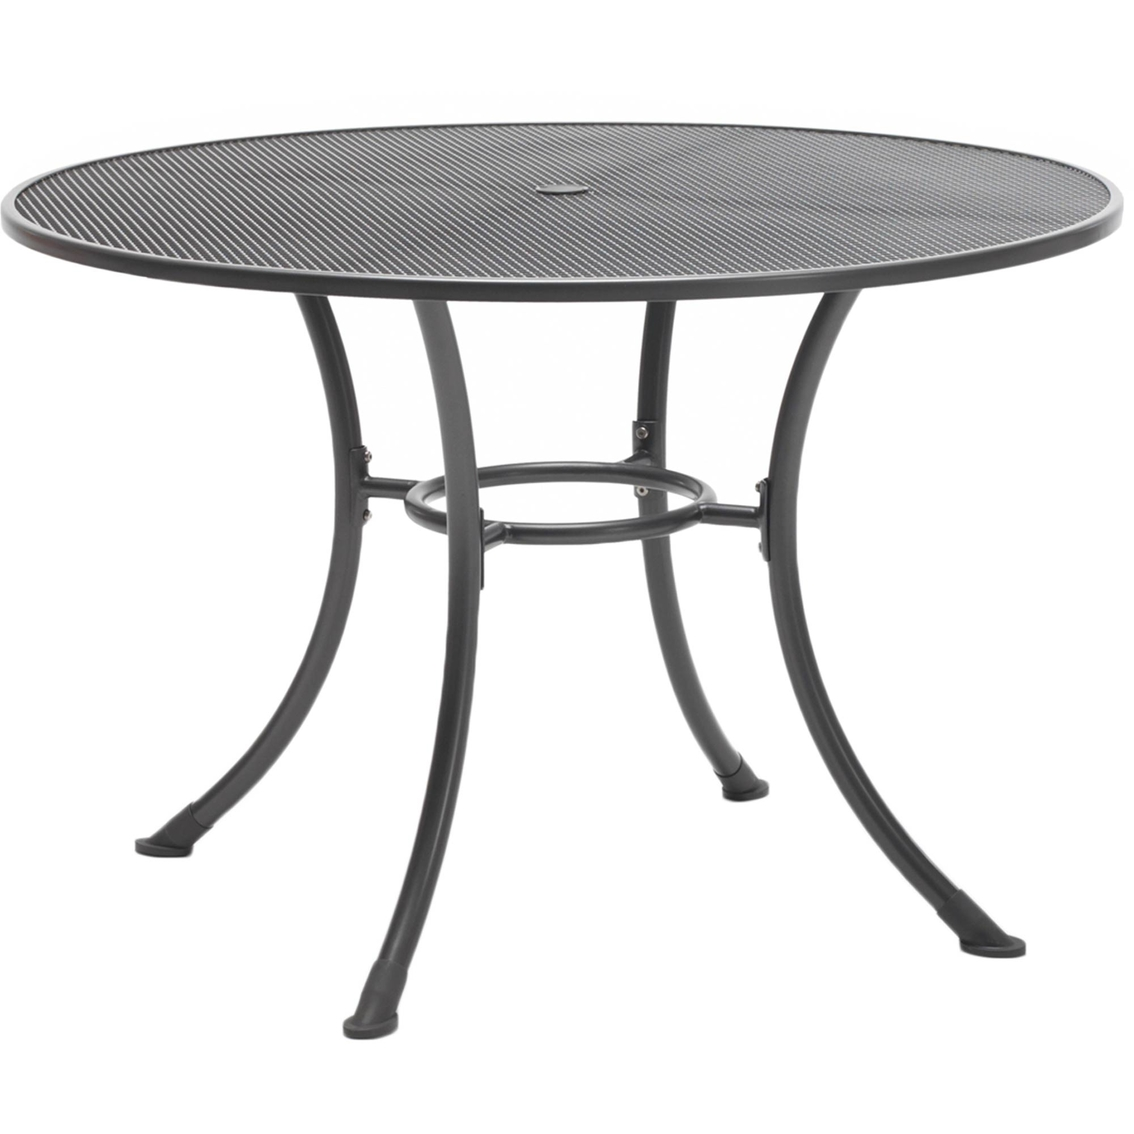 Kettler 11 In. Round Mesh Top Table  Tables & Chairs  Patio